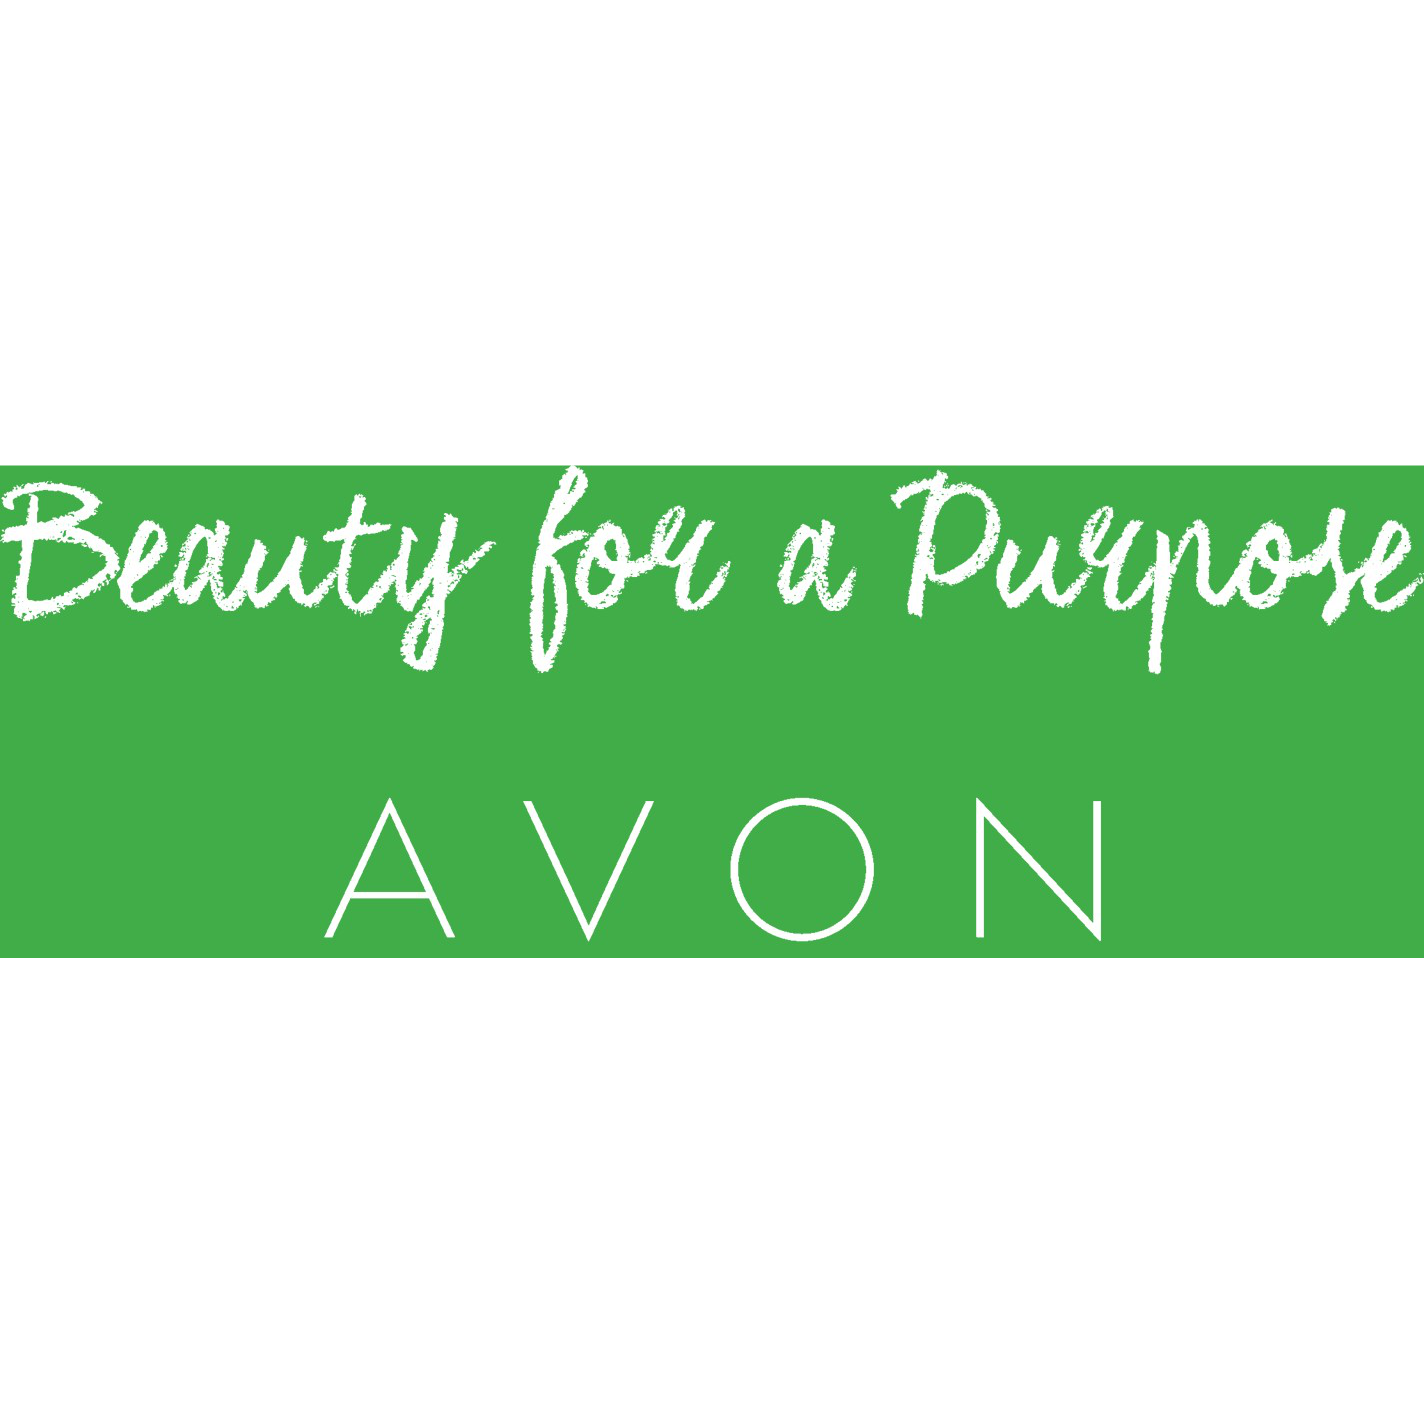 Avon Colombia S.A.S.